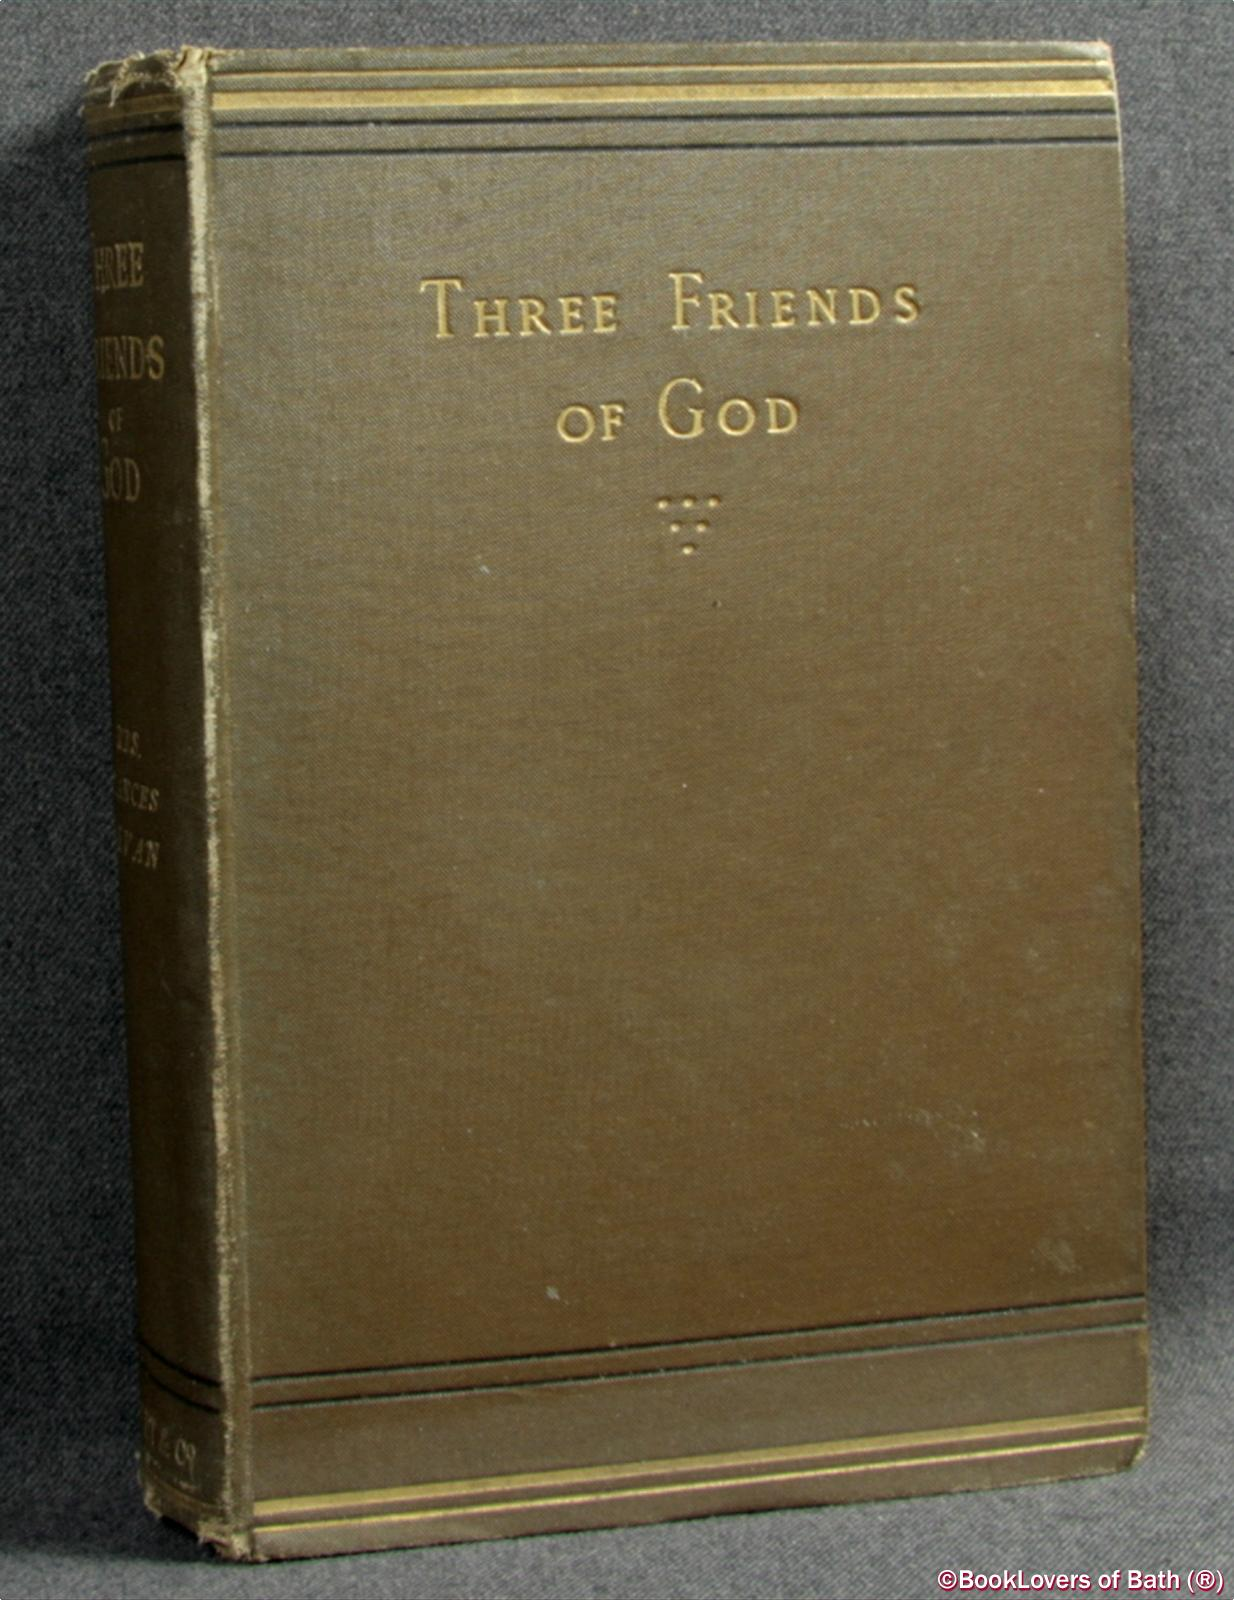 Three Friends of God: Records from the Lives of John Tauler, Nicholas of Basle, Henry Suso - Frances Bevan